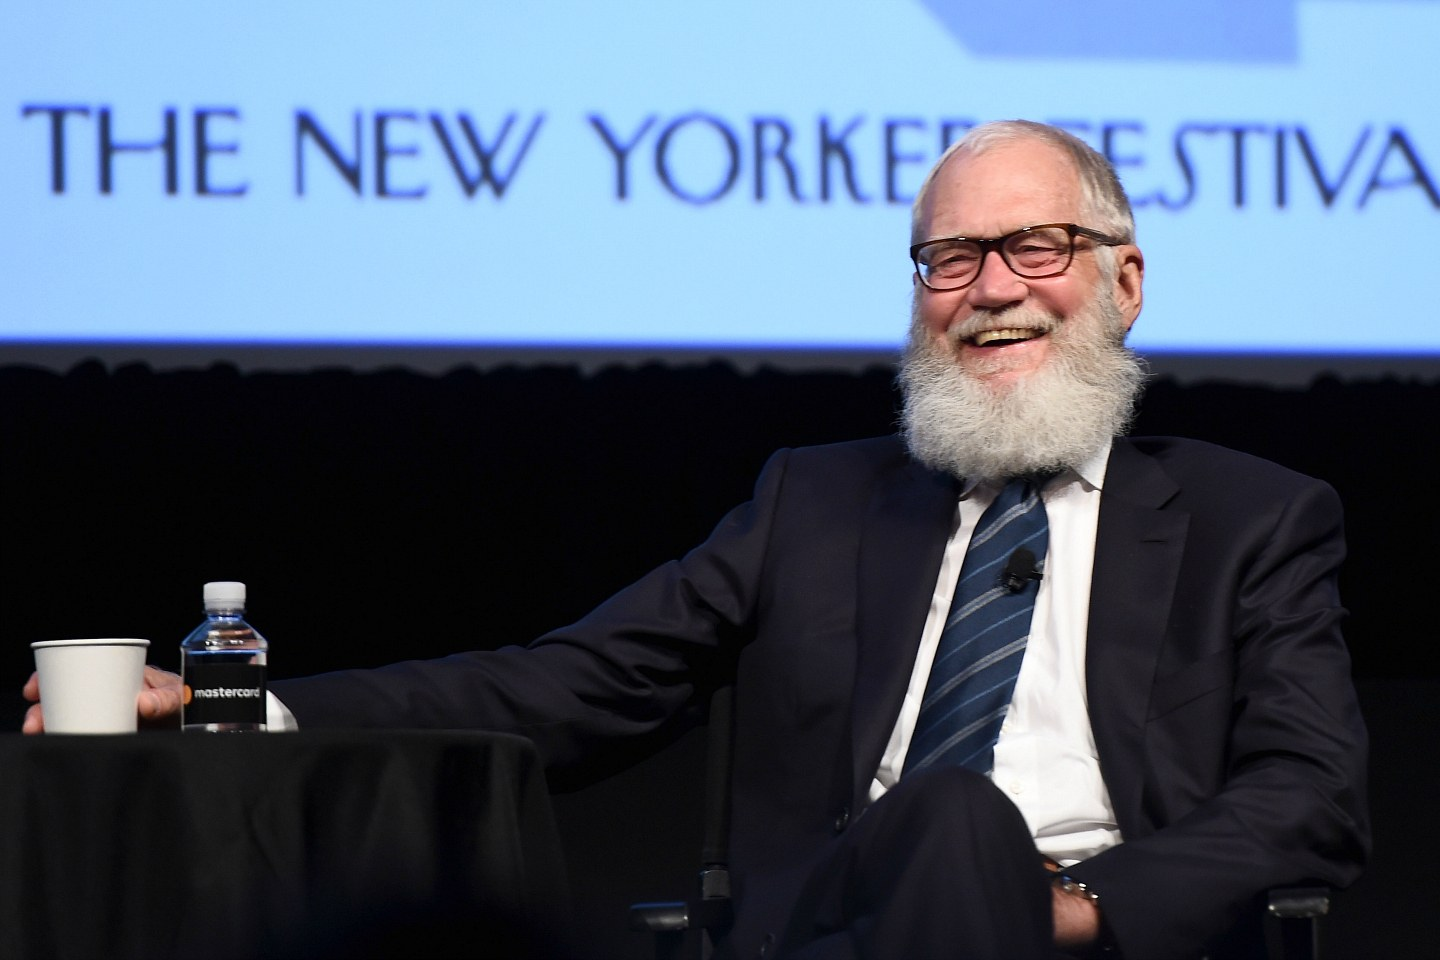 David Letterman Makes His Return To Television On Netflix